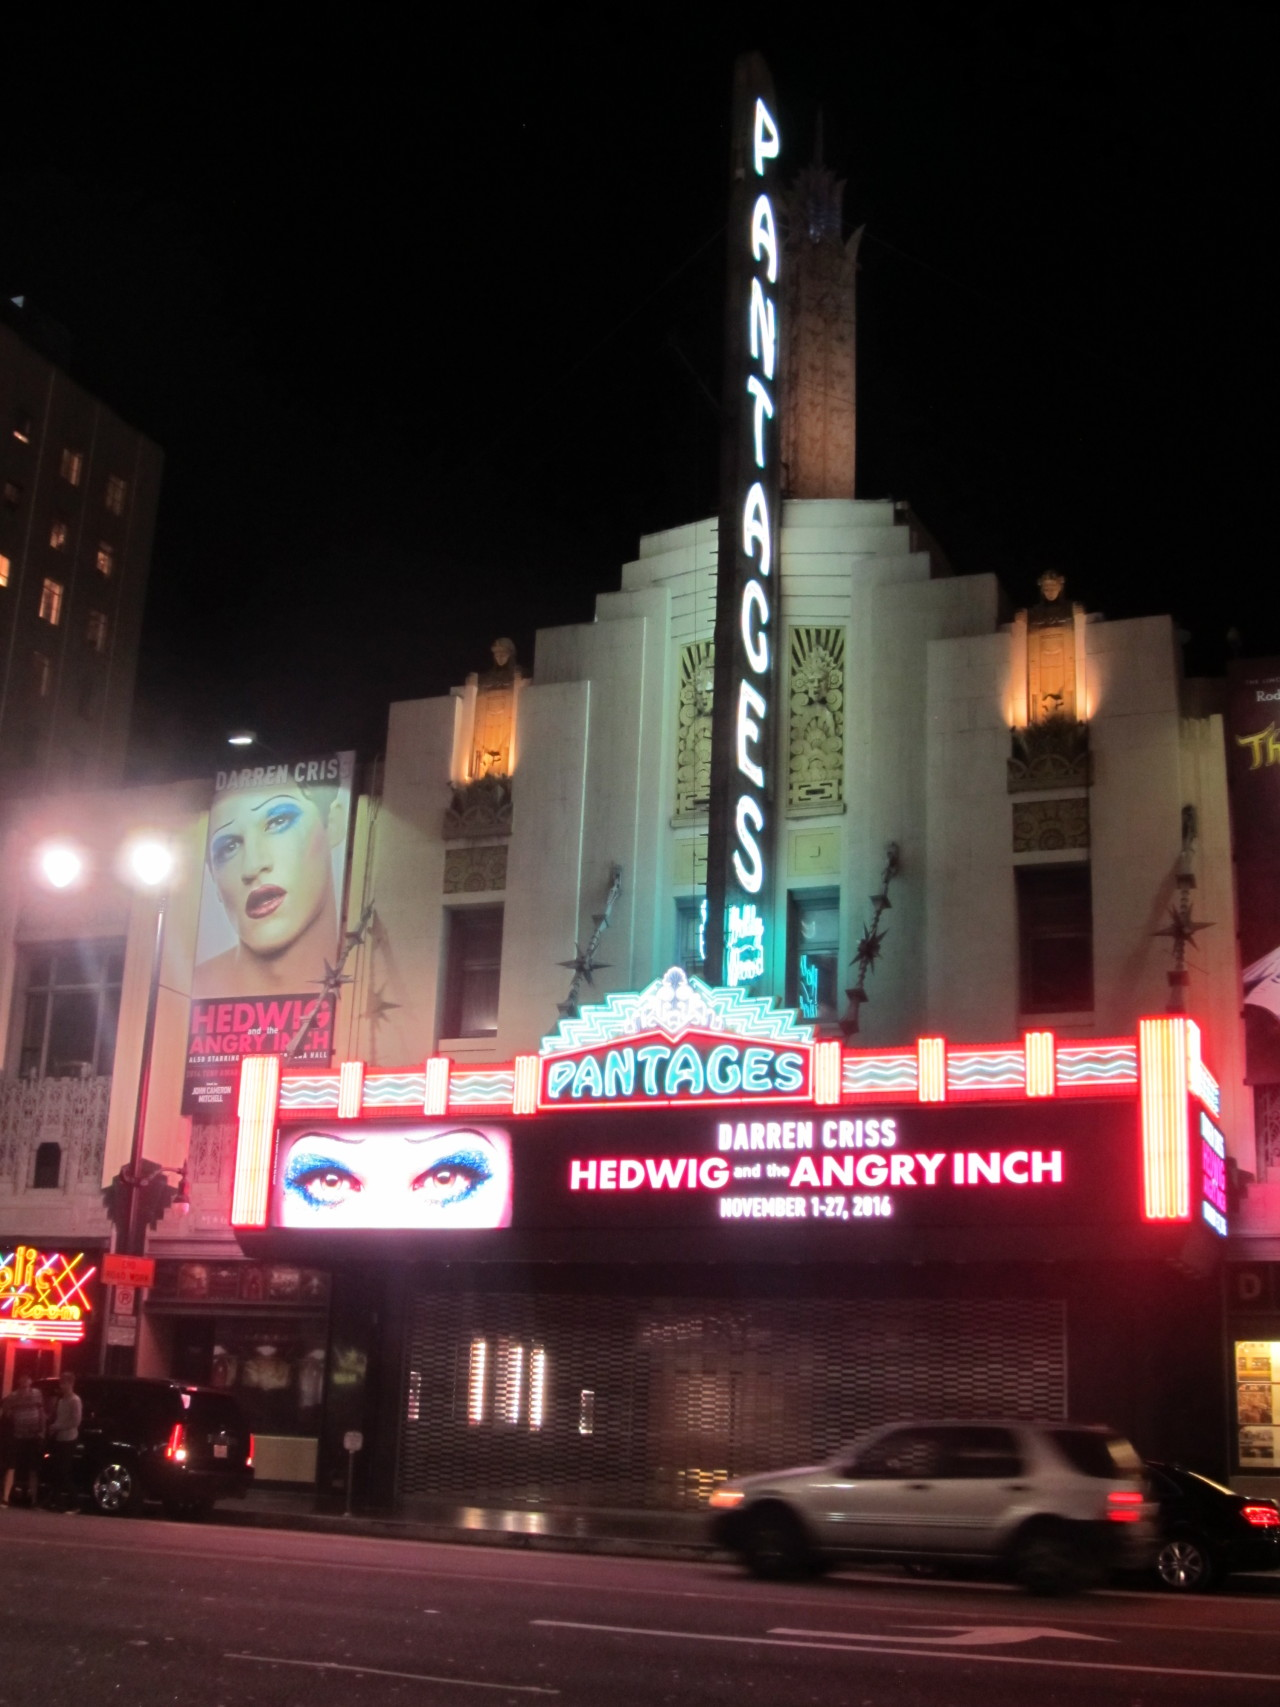 broadway - The Hedwig and the Angry Inch Tour in SF and L.A. (Promotion, Pre-Performances & Miscellaneous Information) - Page 2 Tumblr_obs55unIDR1qmj3nao1_1280